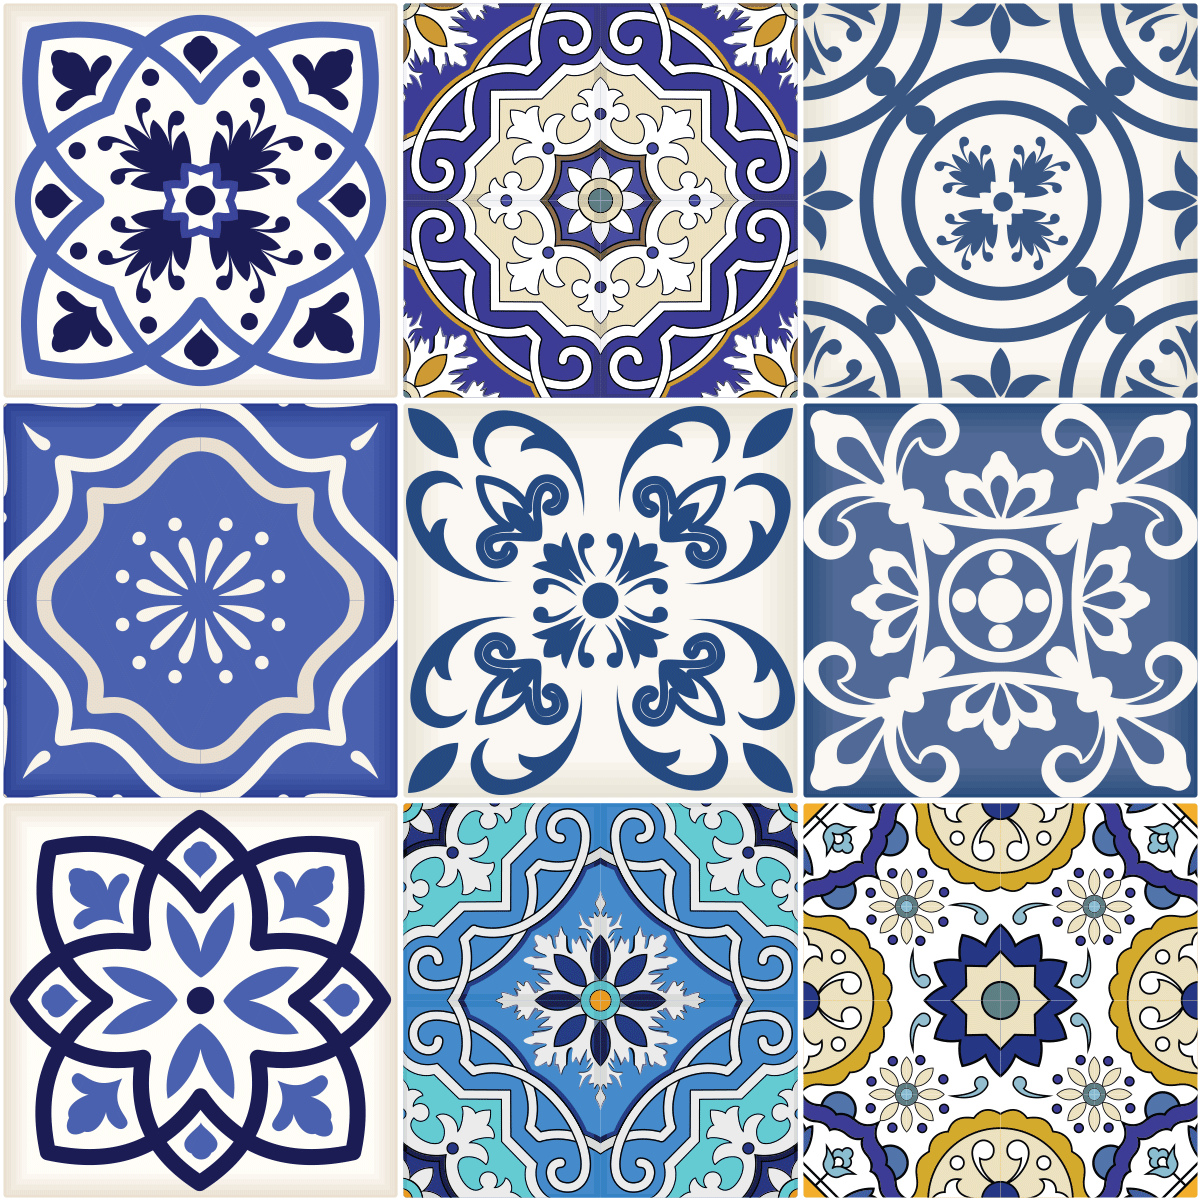 carrelage azulejos sticker carrelage azulejos portugais wall carrelage azulejo d finition. Black Bedroom Furniture Sets. Home Design Ideas